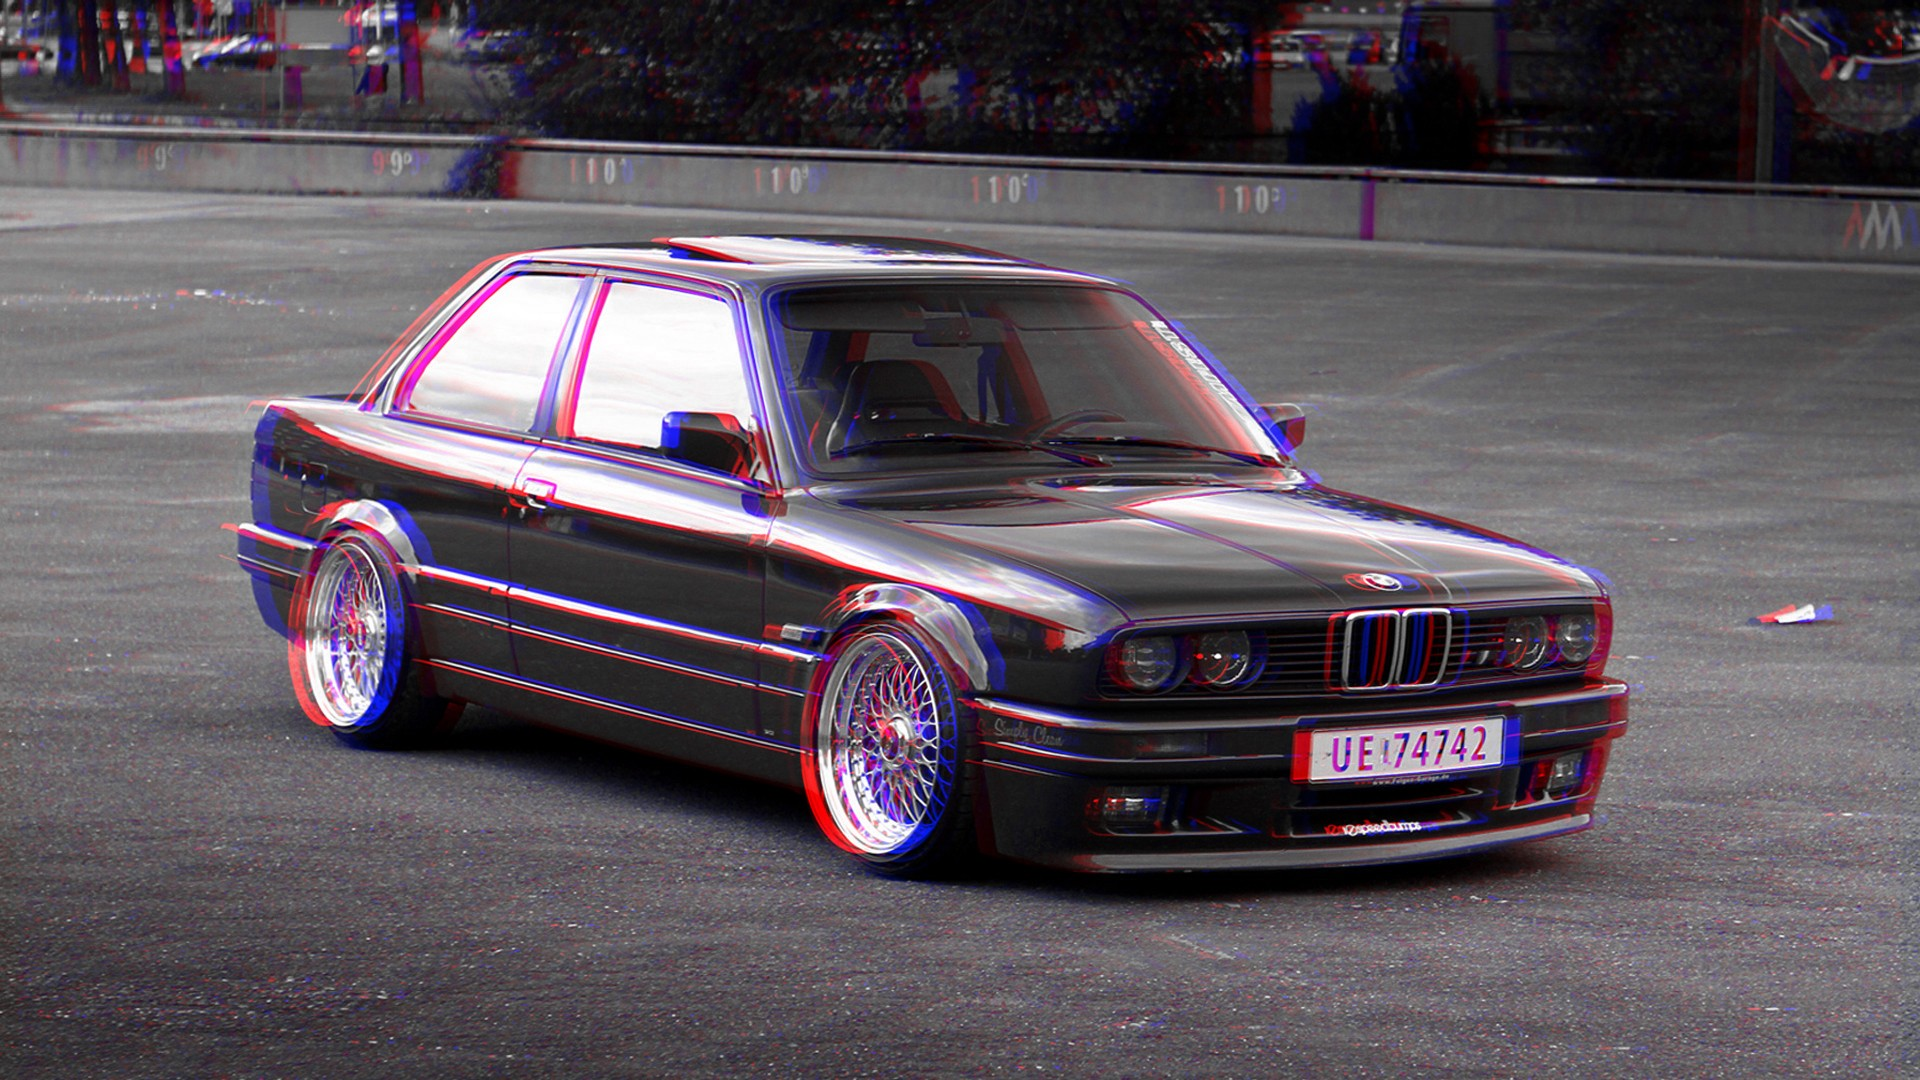 1280x800 Bmw E30 3d 720p Hd 4k Wallpapers Images